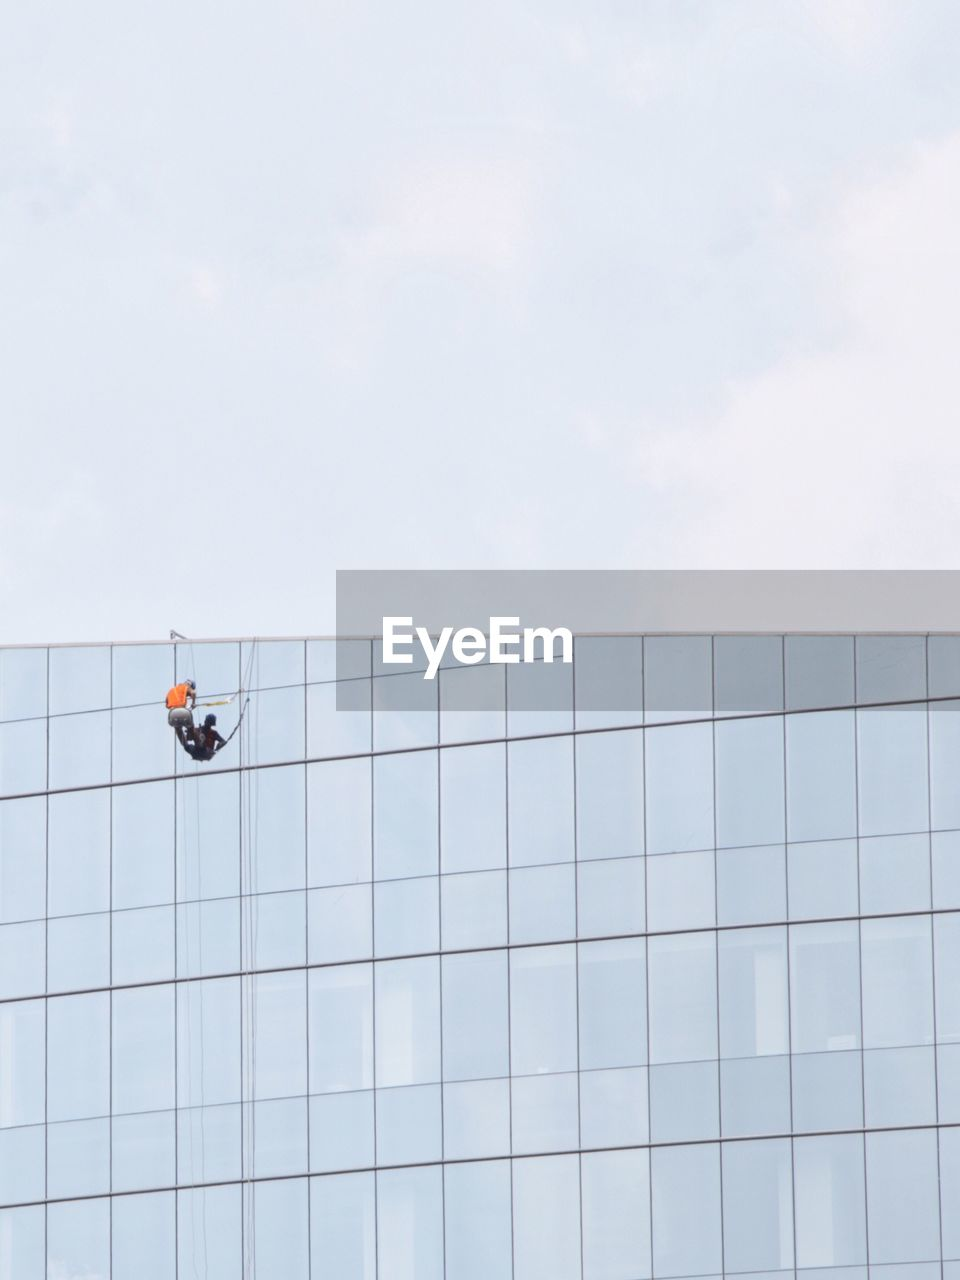 Low Angle View Of Worker Washing Window On Building Against Clear Sky